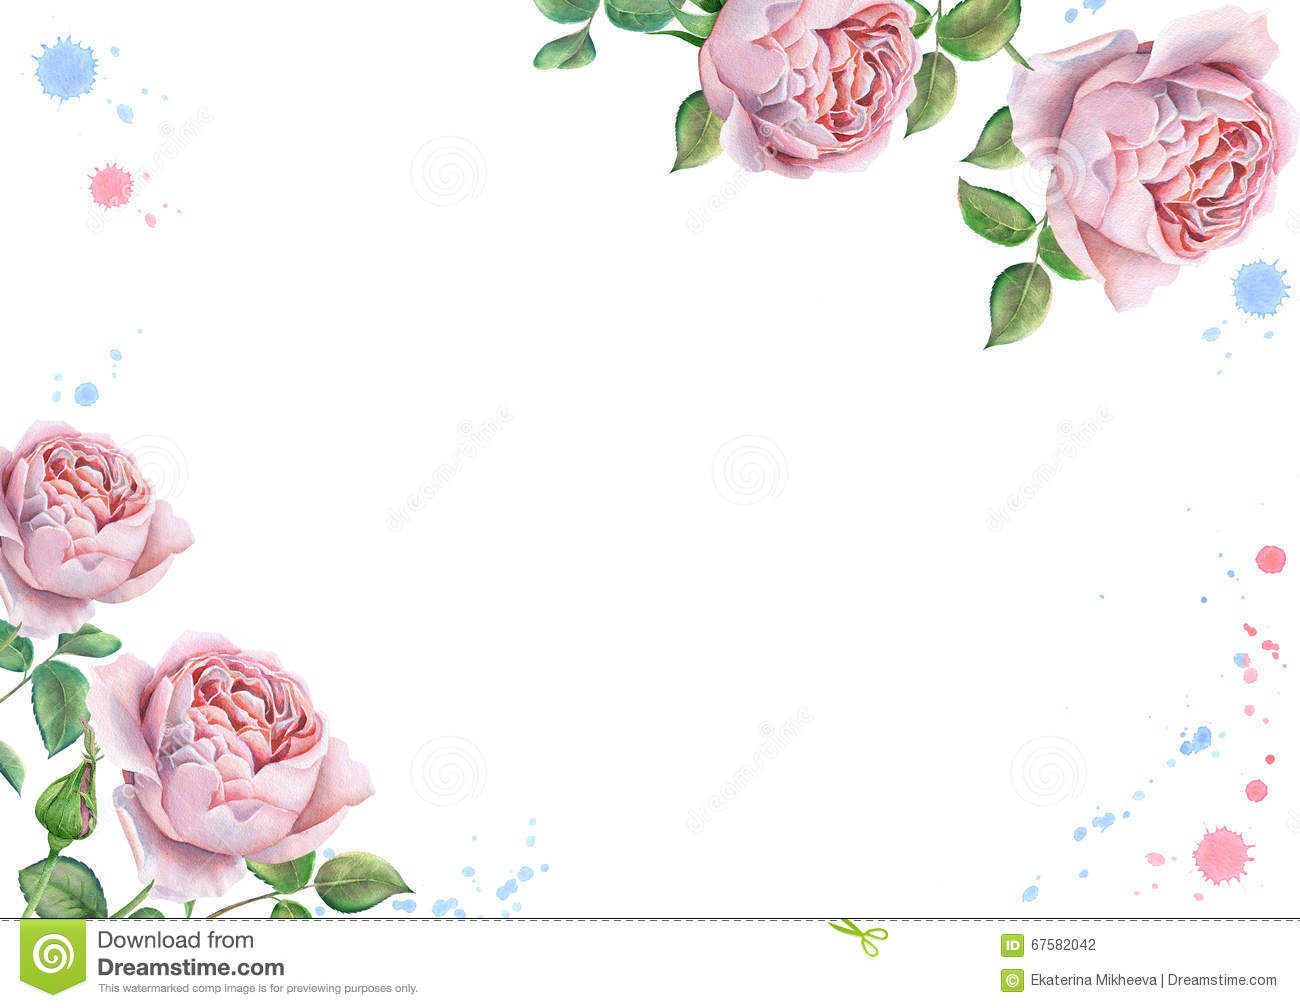 Watercolor Floral Frame With English Roses Stock Photo - Image of ...